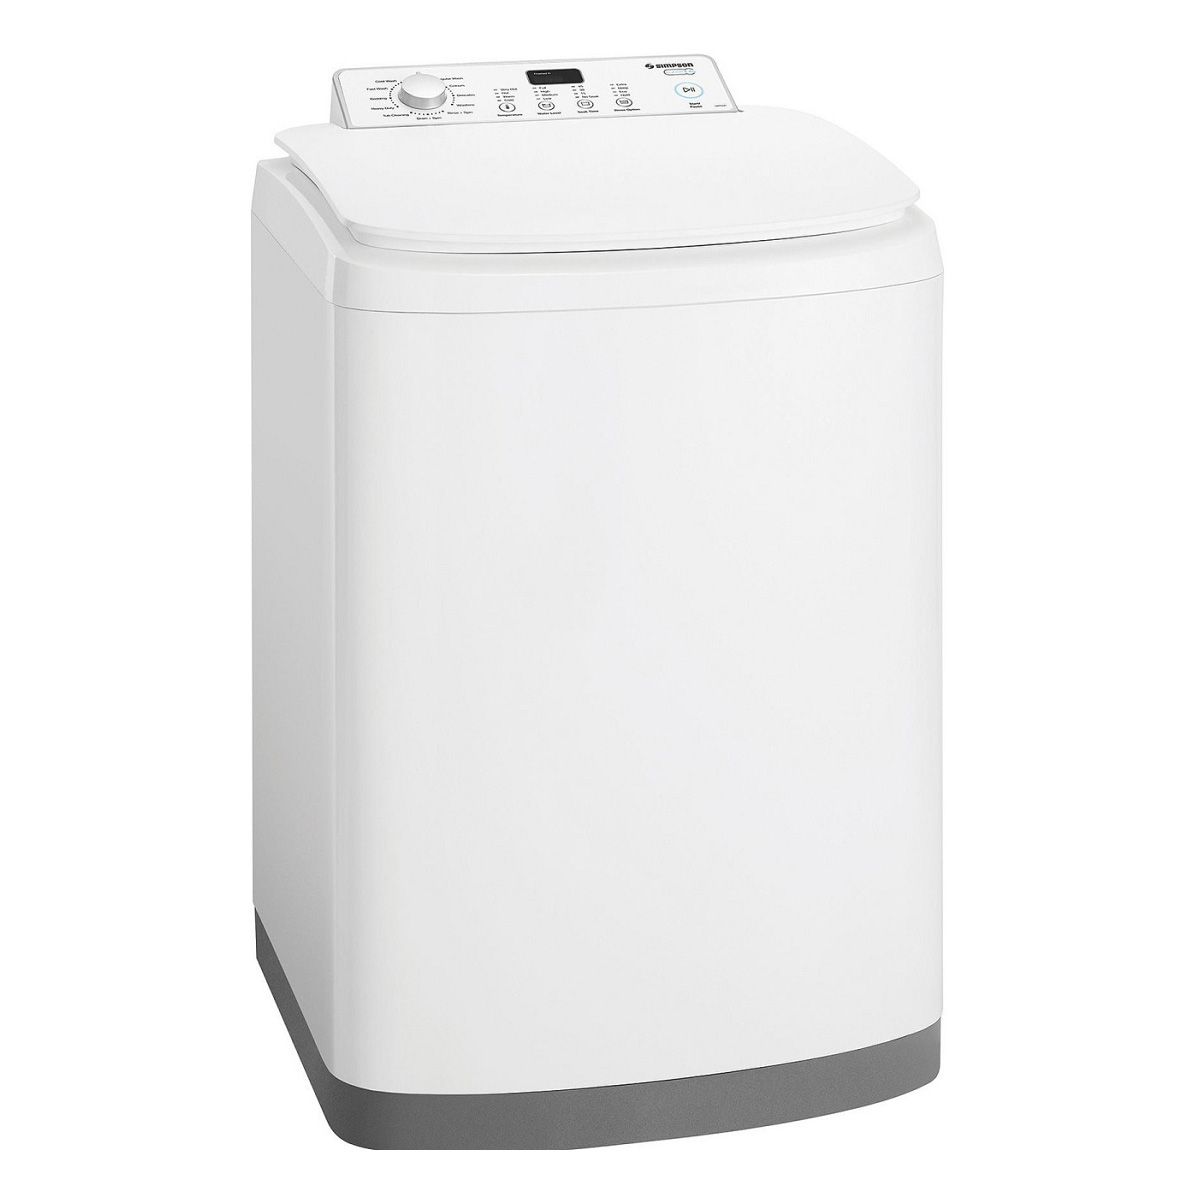 Simpson SWT5541 5.5kg Top Load Washing Machine